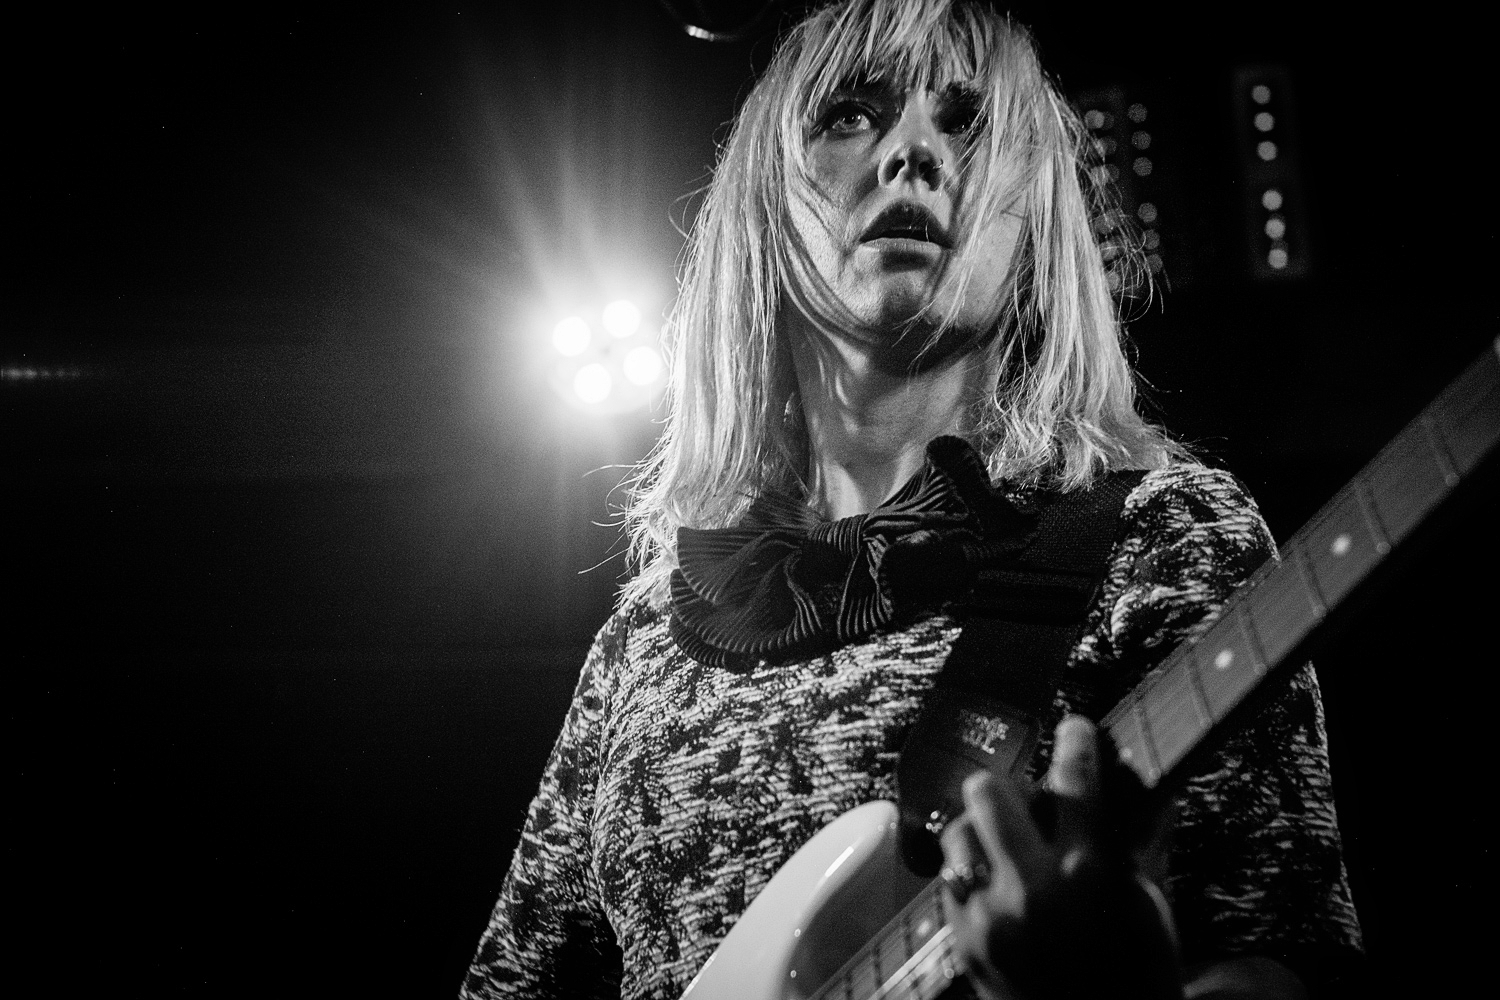 20180820-014-The-Joy-Formidable-@-Blue-Shell-Köln-Cred_Michael_Lamertz_@indie.and_.more_.jpg